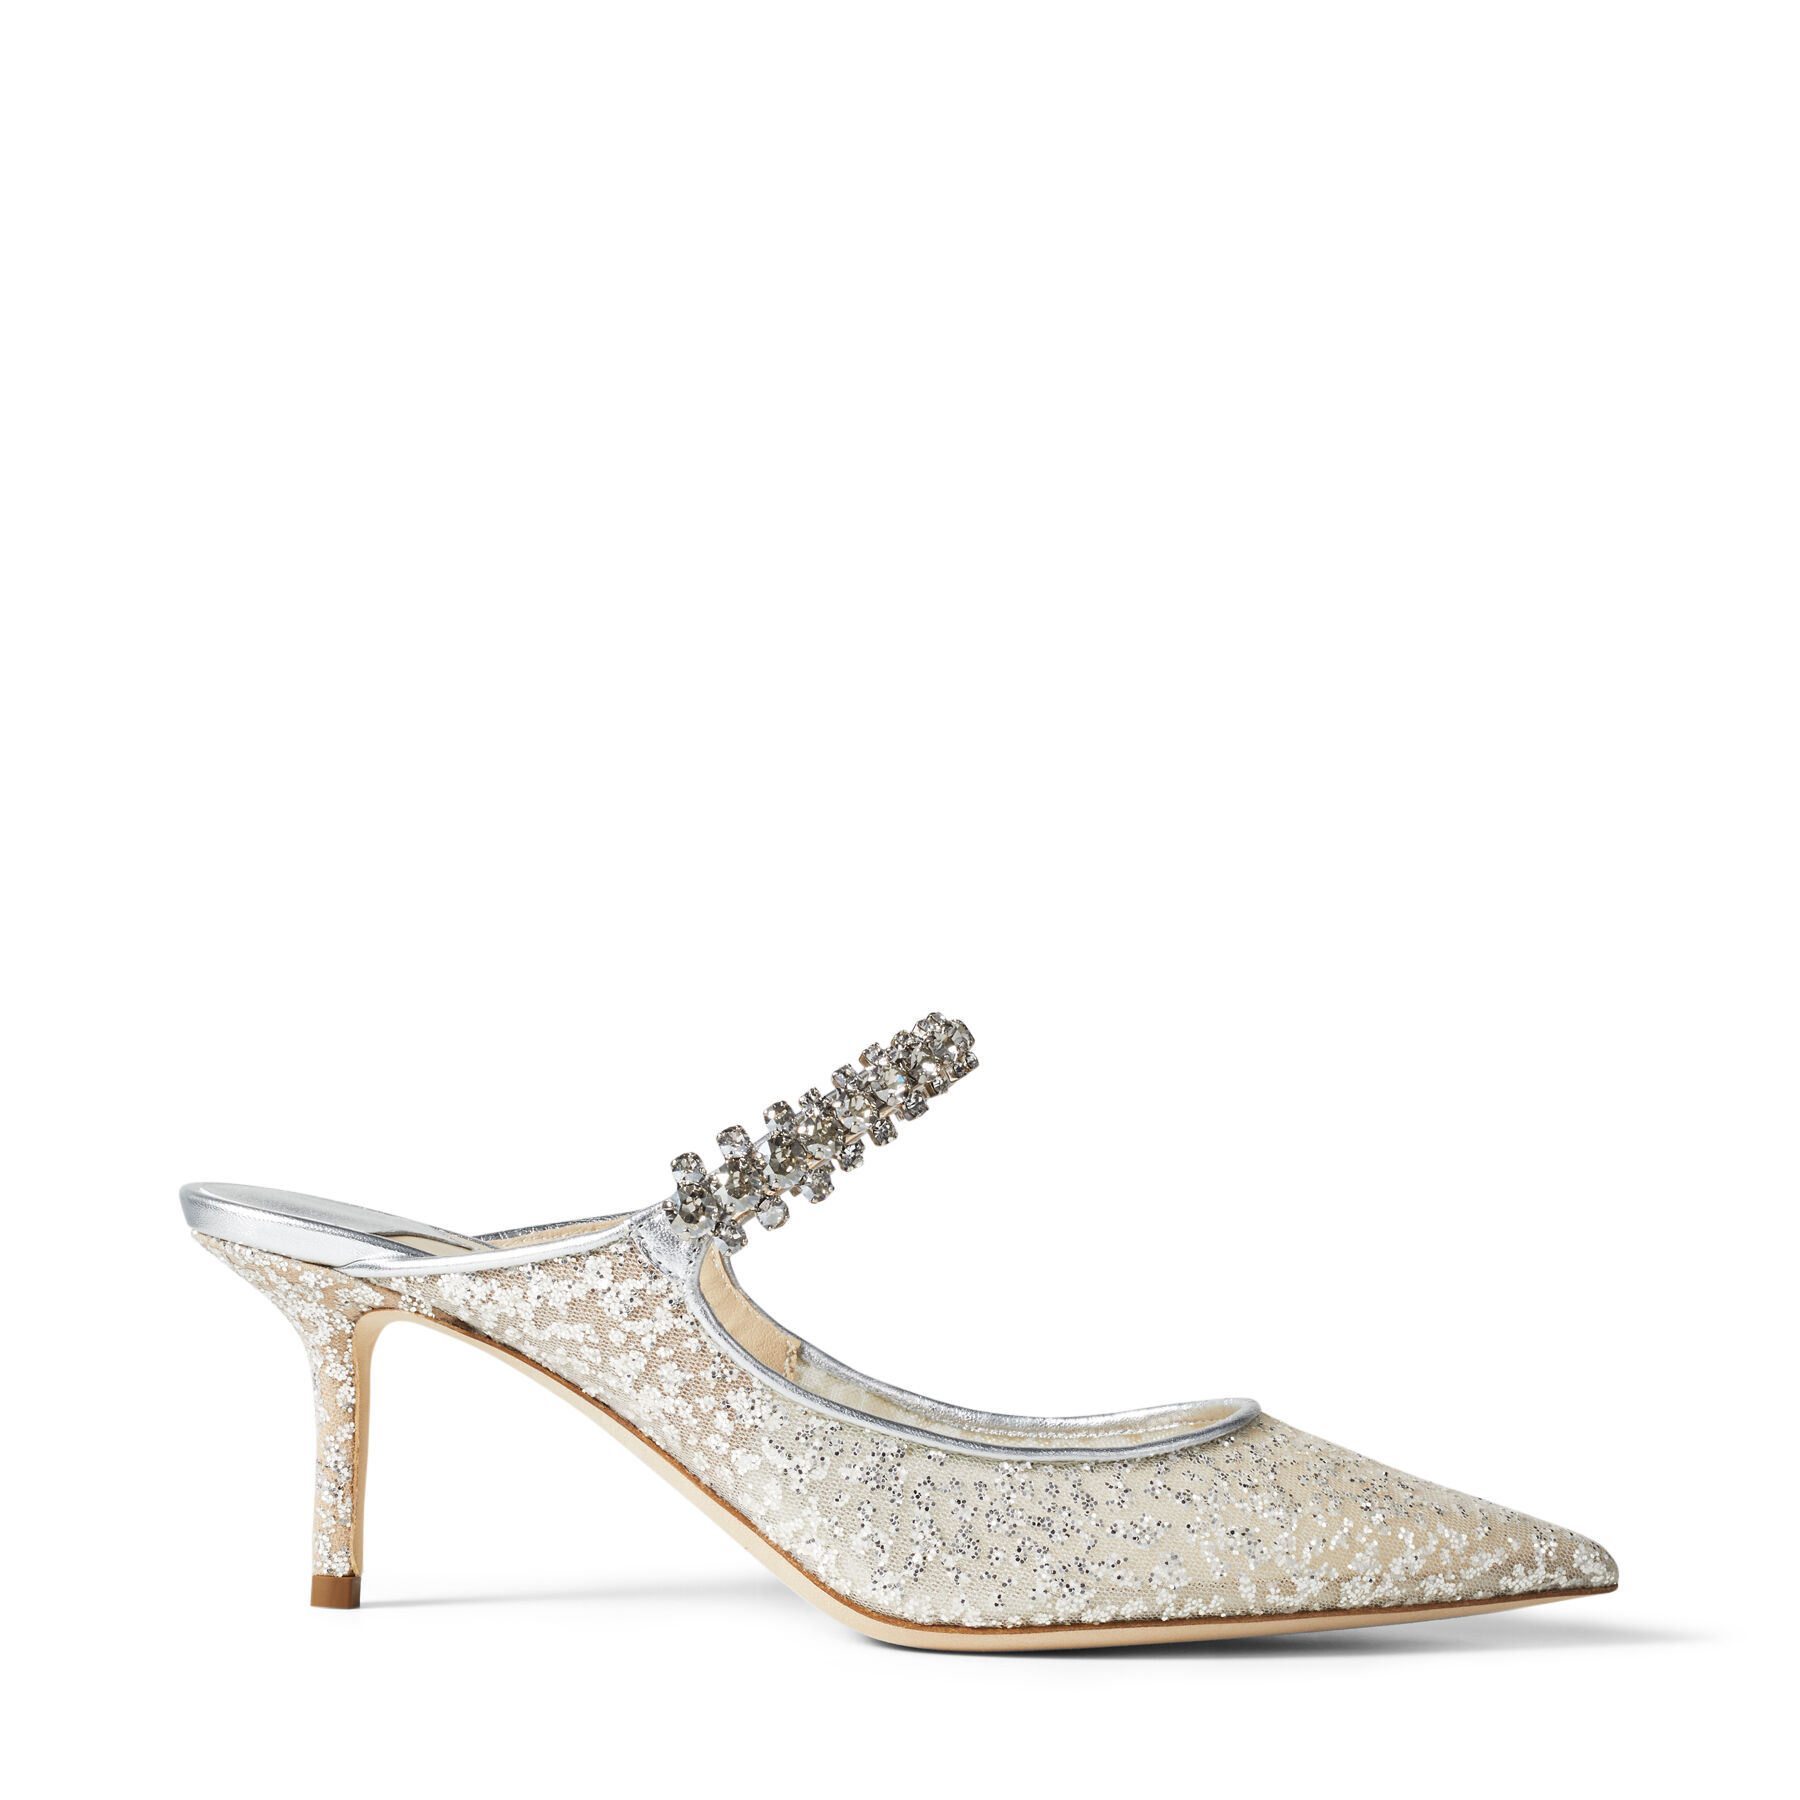 BING 65 - Silver Glitter Tulle Mules with Crystal Strap